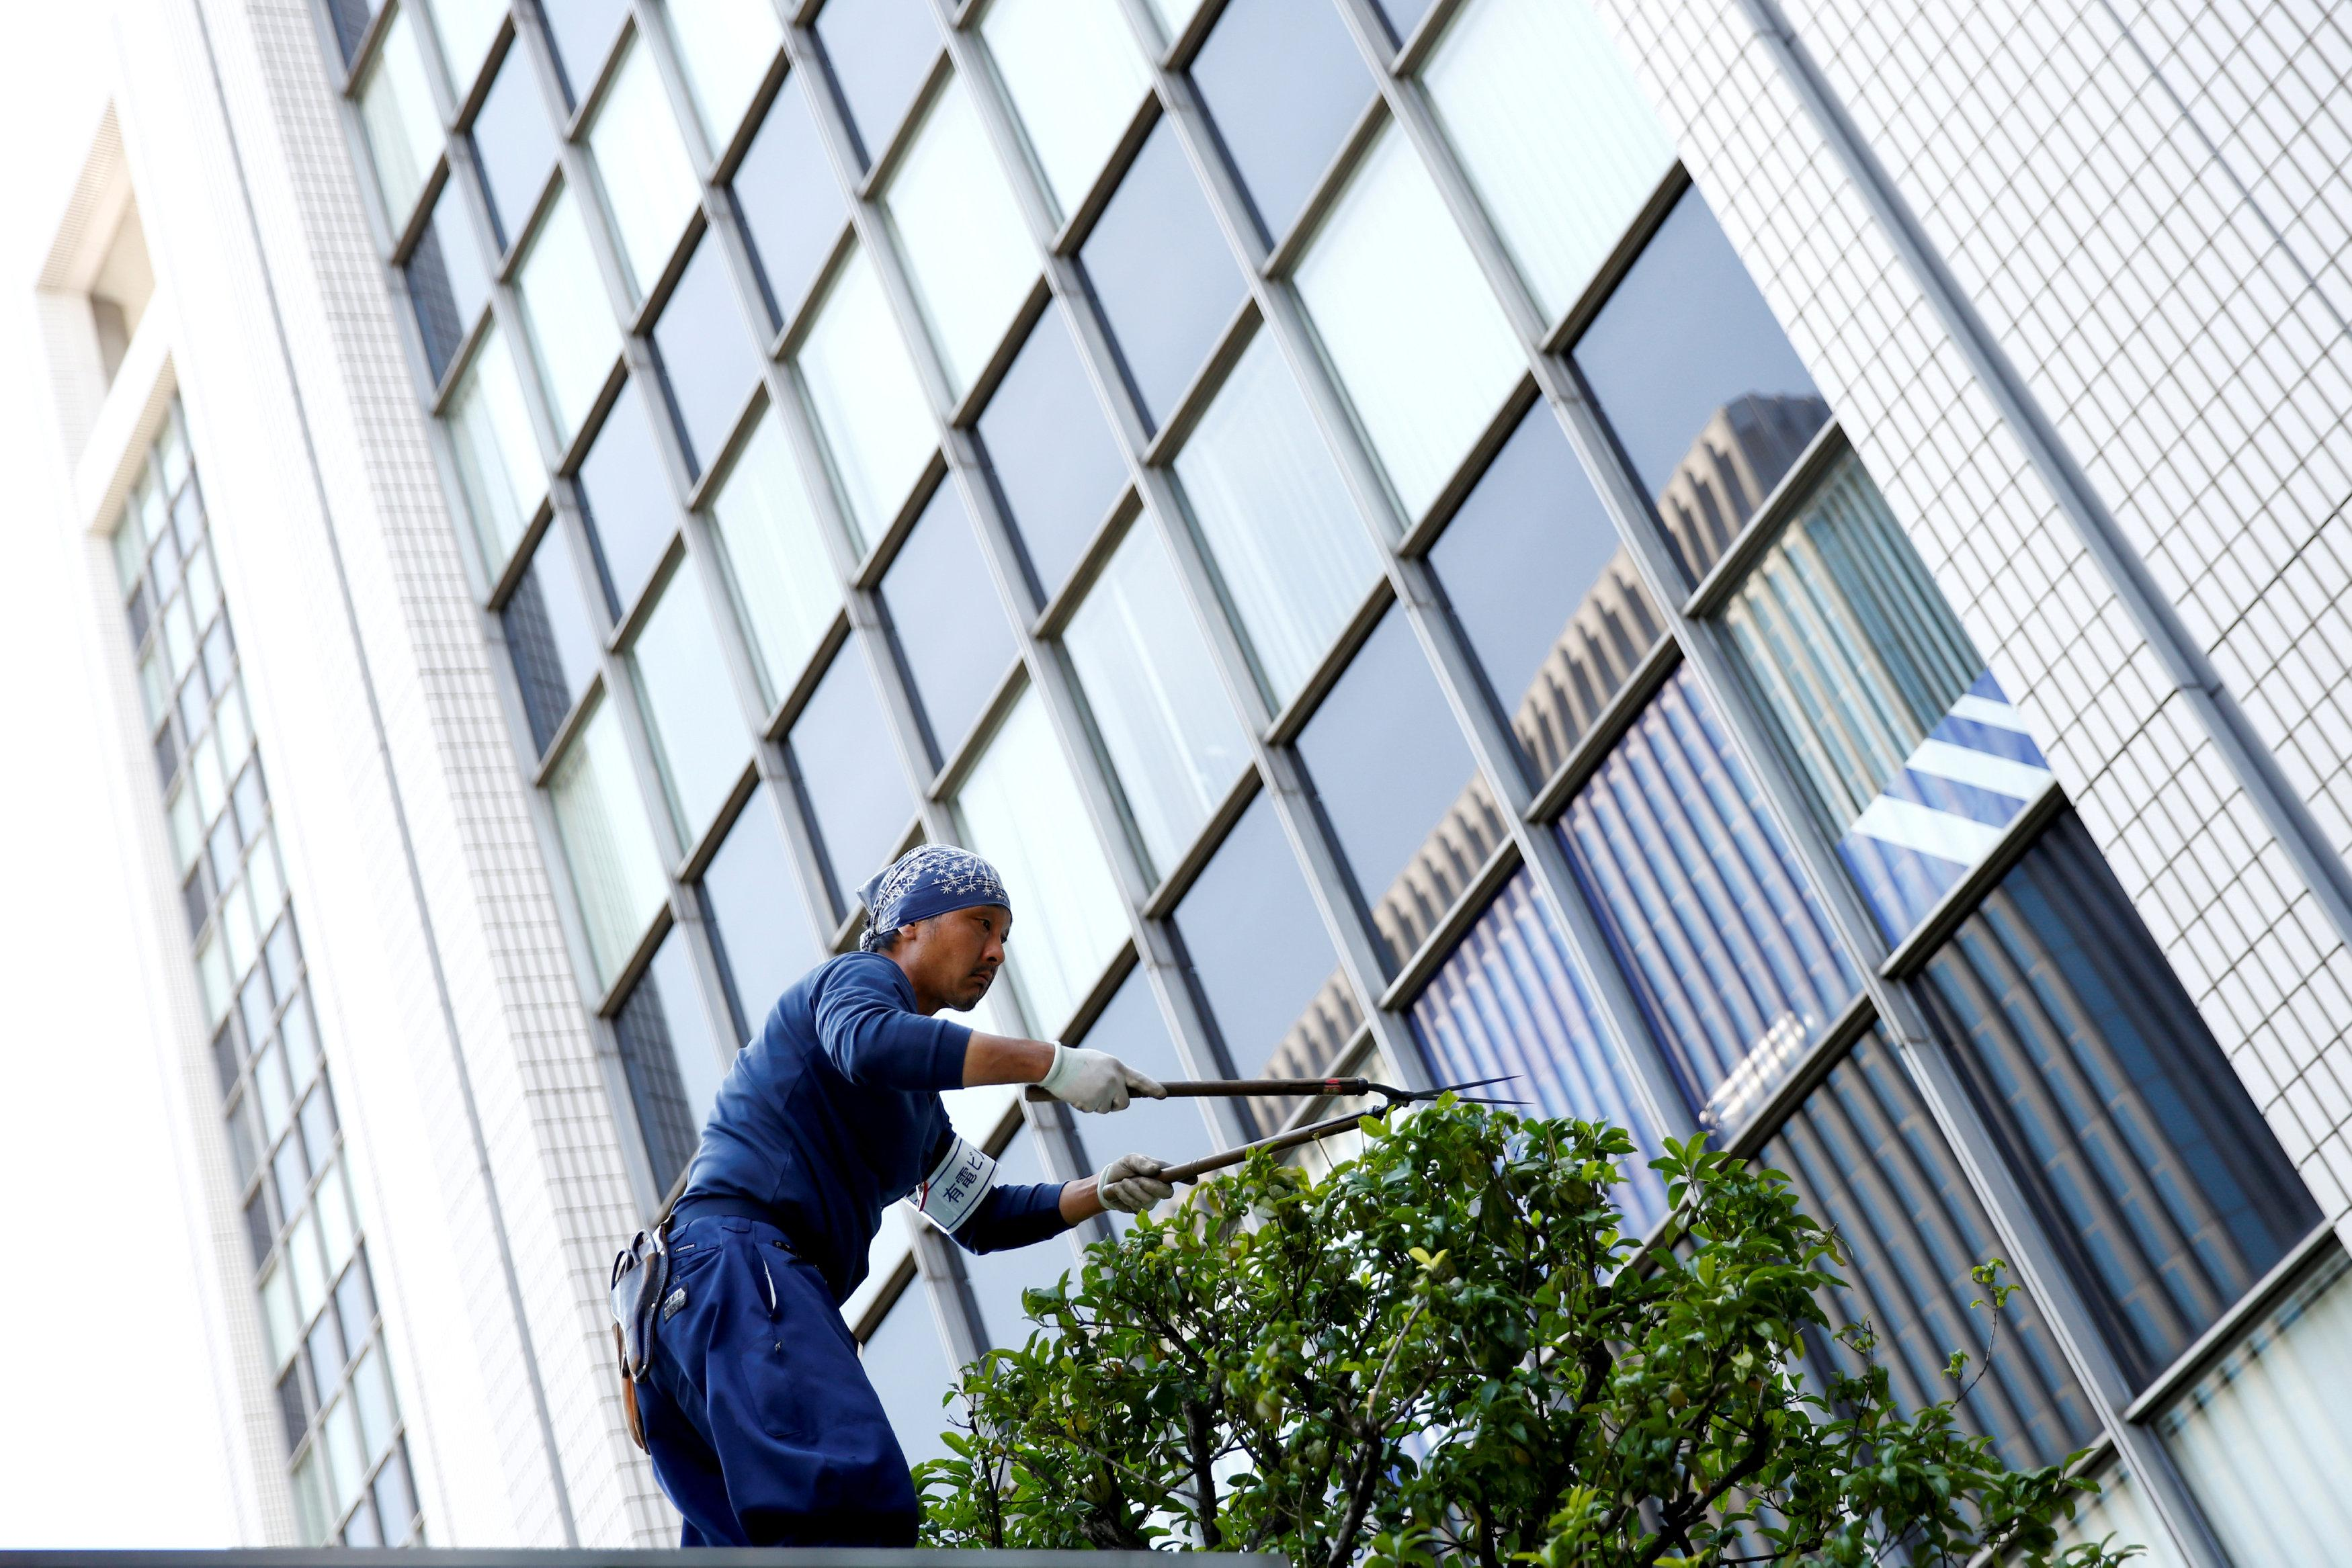 A worker cuts a tree in front of an office building at a business district in Tokyo, Japan, May 18, 2016. Thomas Peter